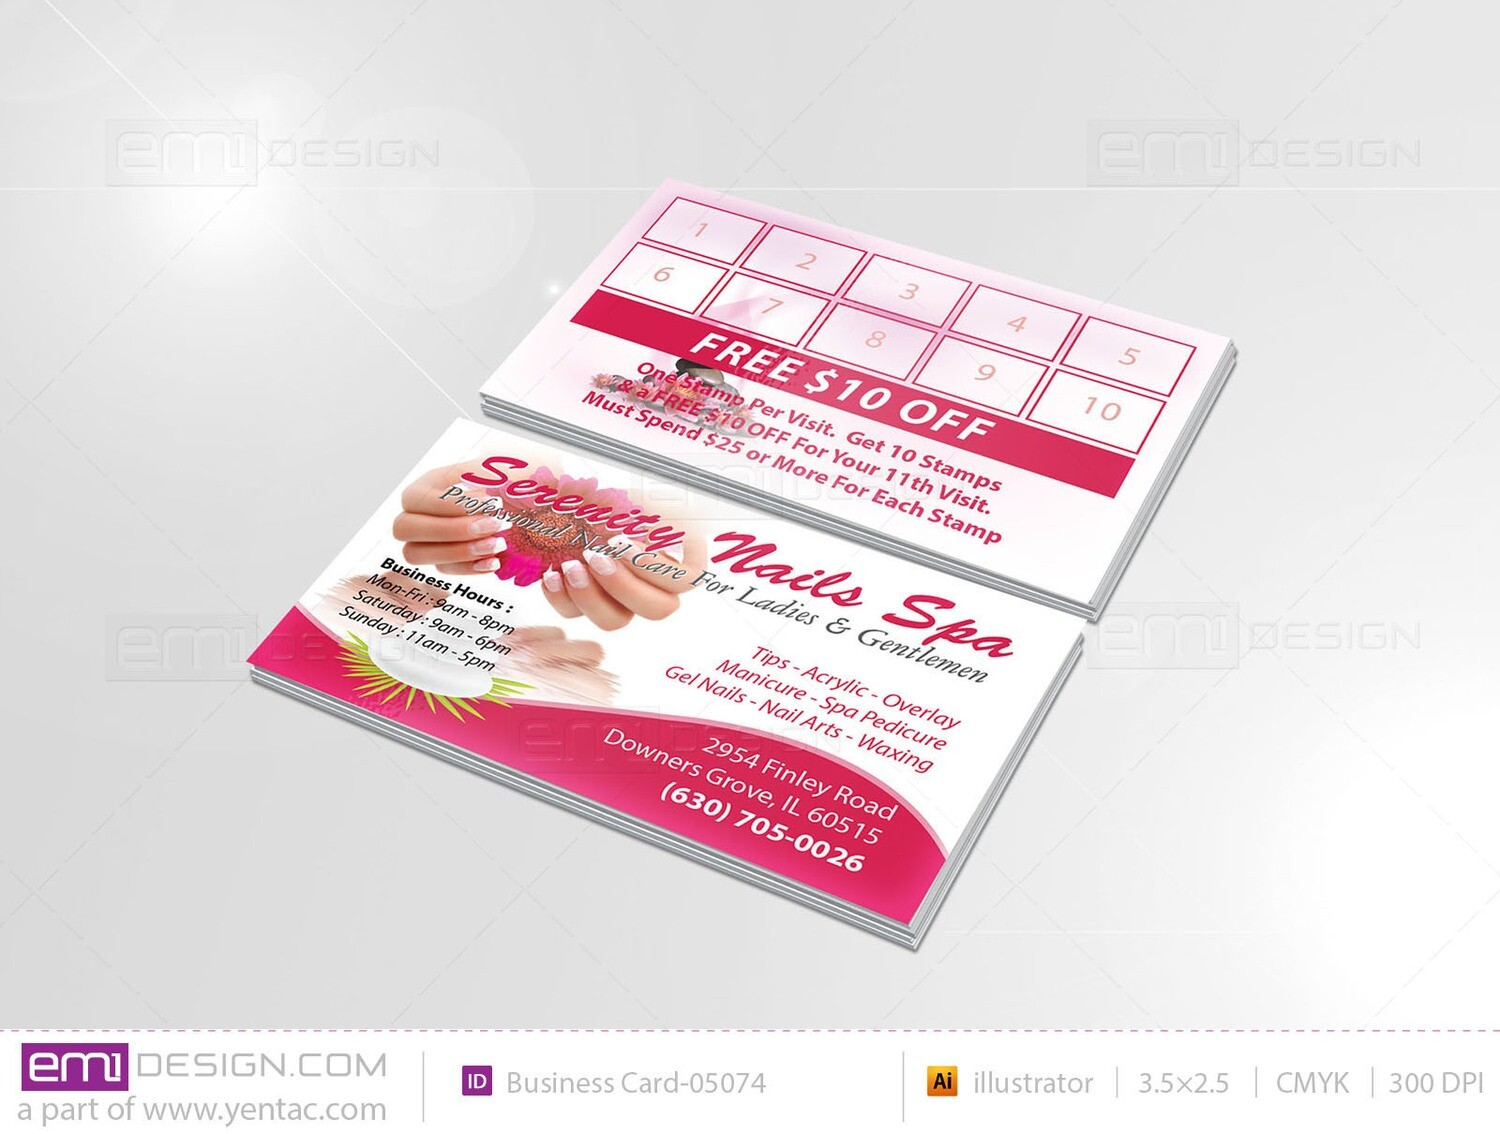 Business Card - Template BusCard-05074